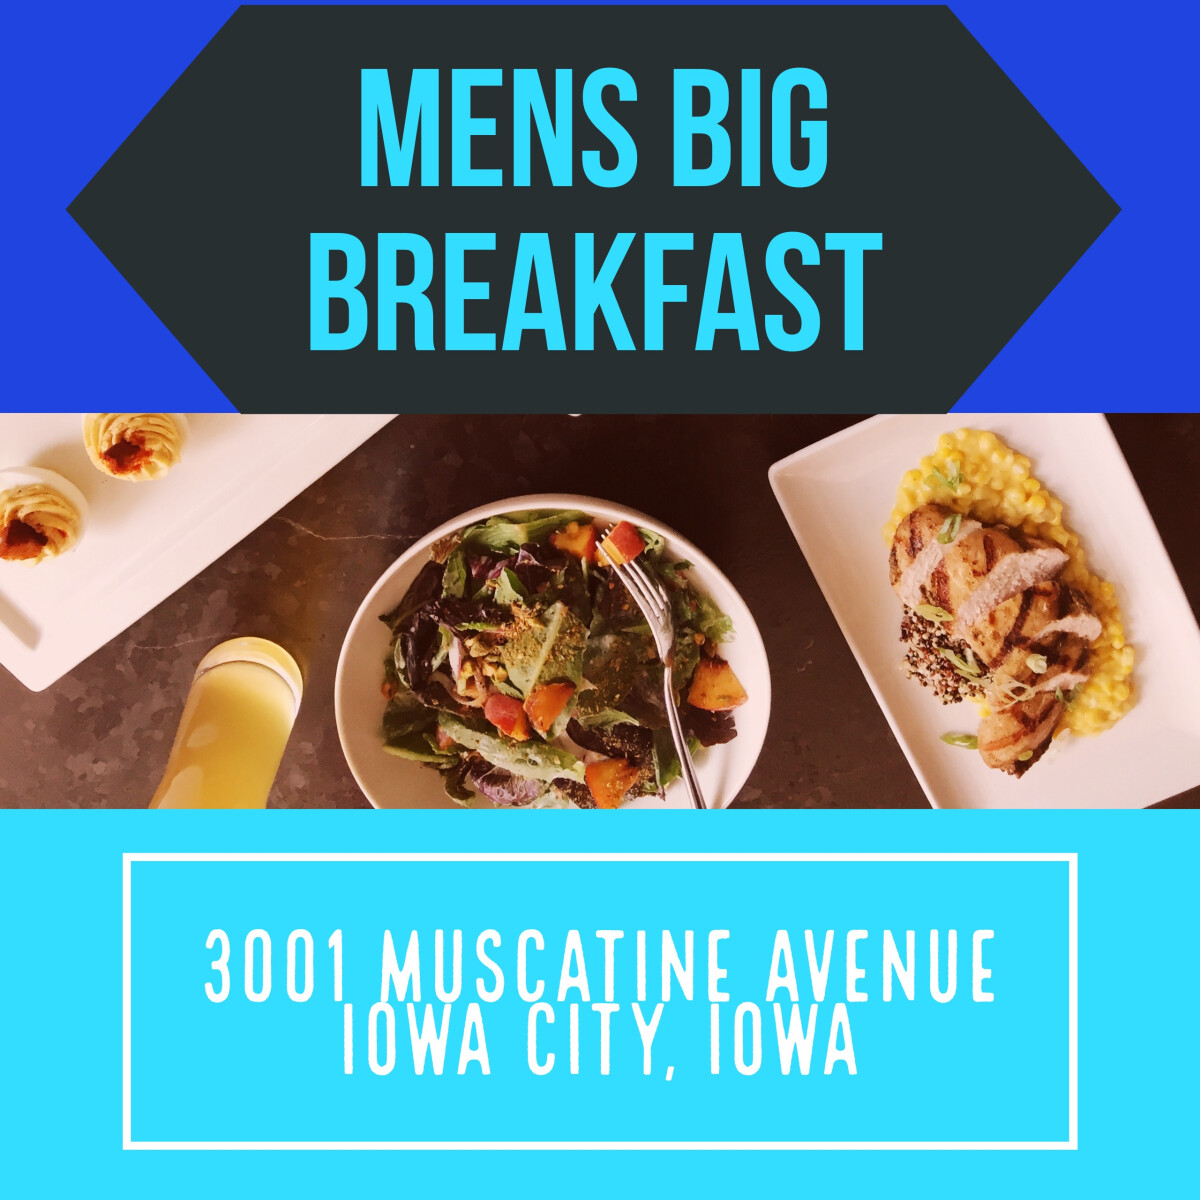 Men's BIG Breakfast